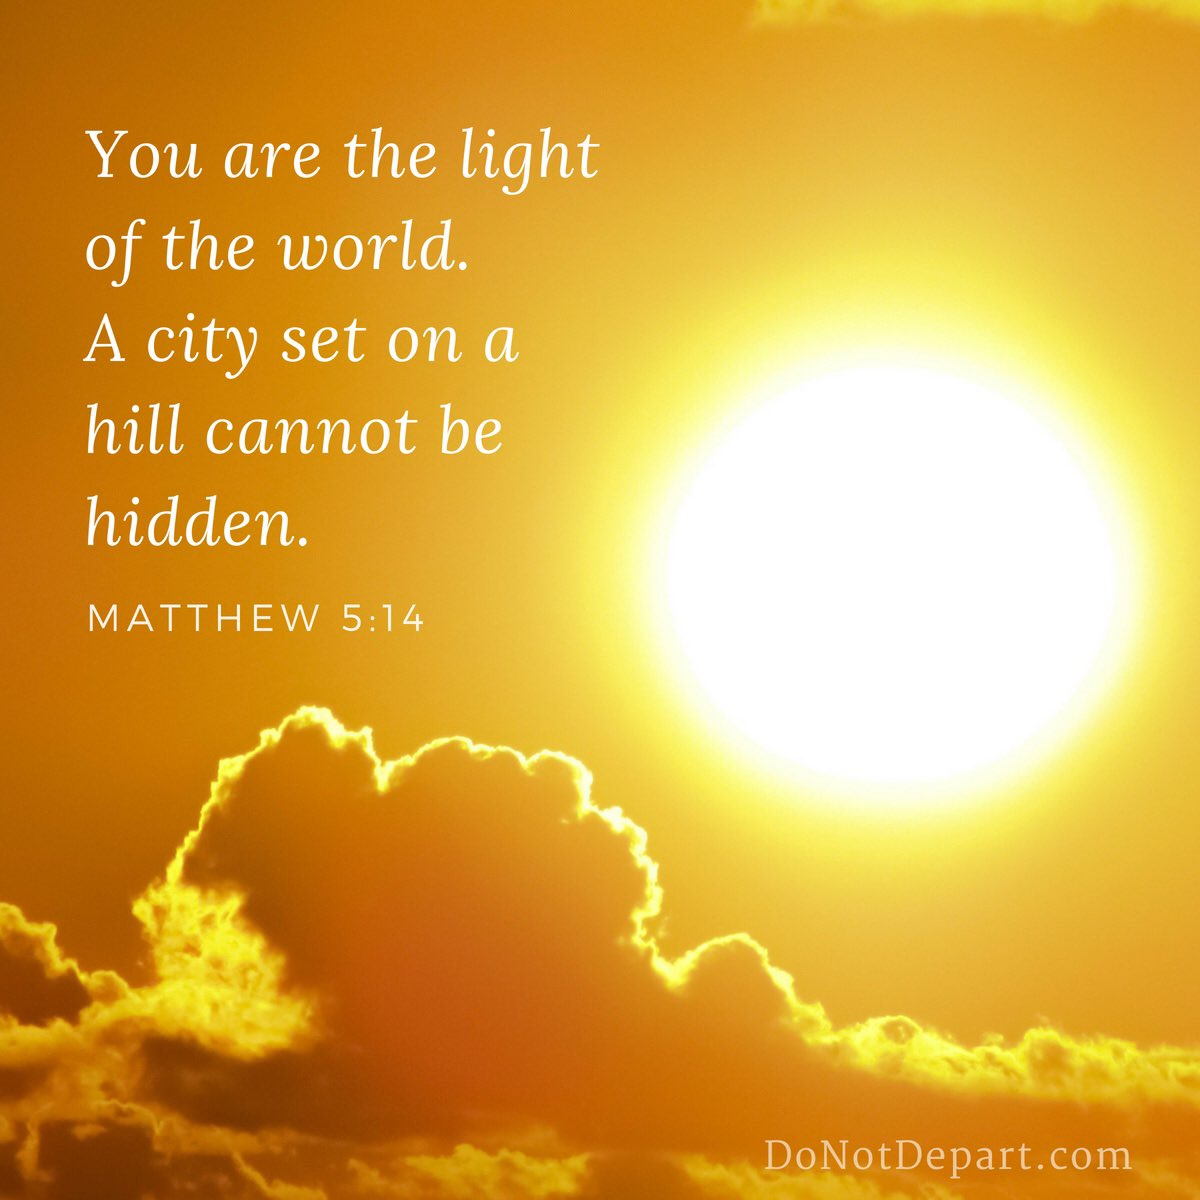 Nothing can hide your light.. let it shine!! 💛 ☀️🙏🏼☀️💛